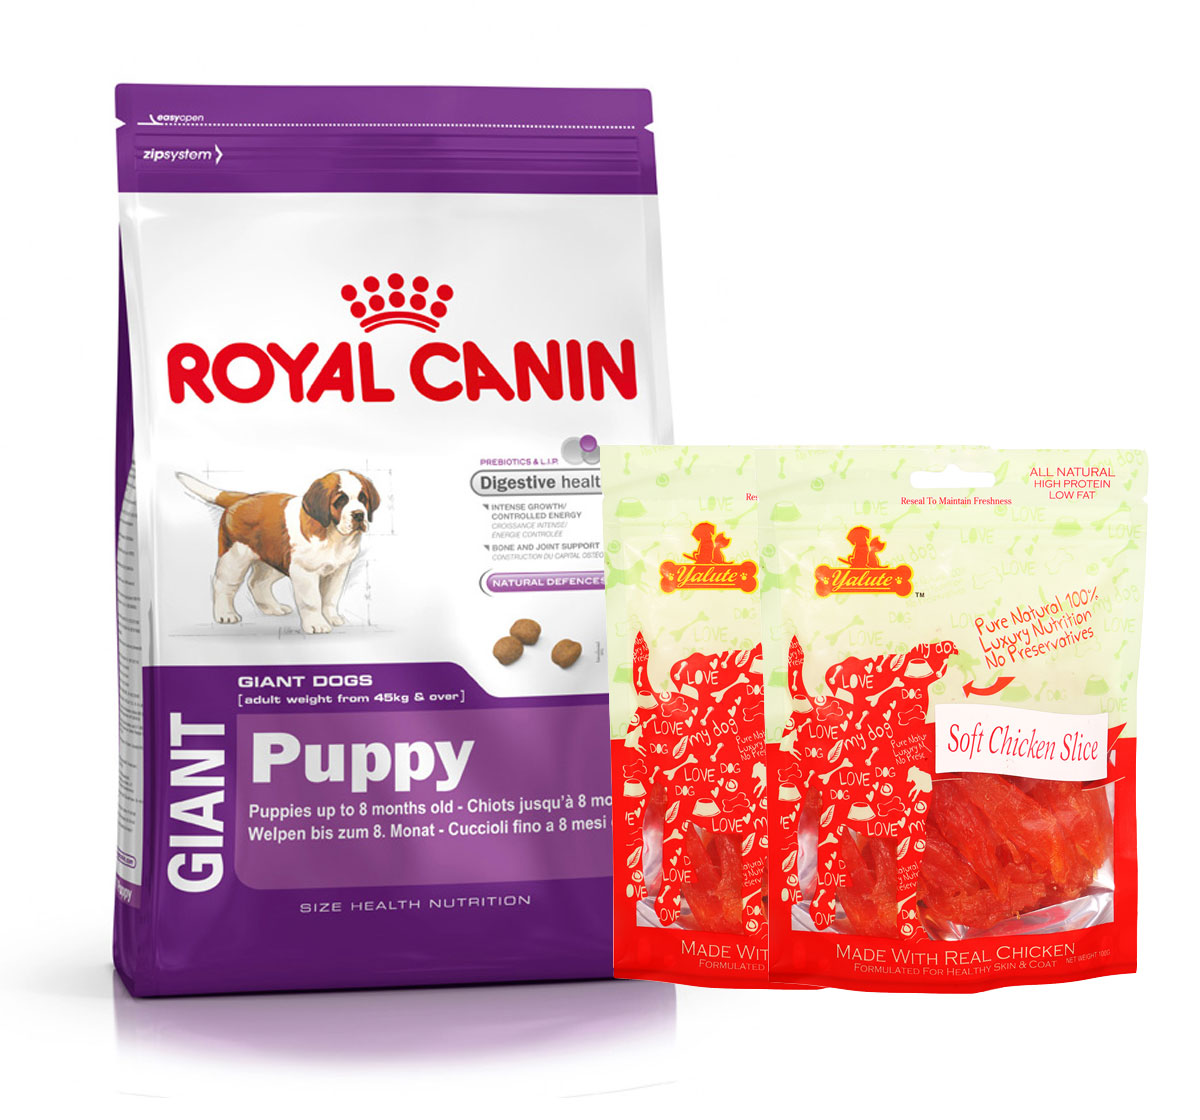 Royal Canin Giant Puppy - 4 Kg  With Chicken Slices